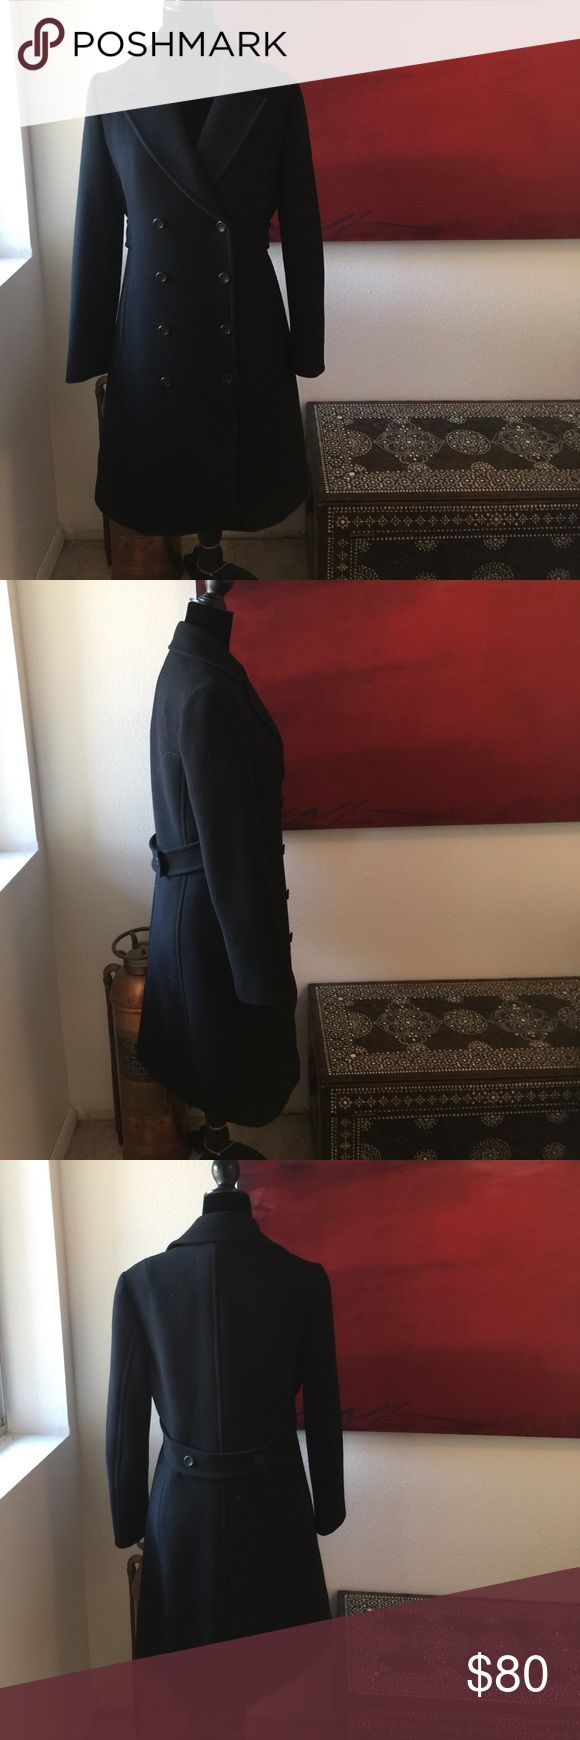 The perfect long black pea coat! Worn but in great condition with no issues absolutely beautiful coat bundle for a better price! J. Crew Jackets & Coats Pea Coats